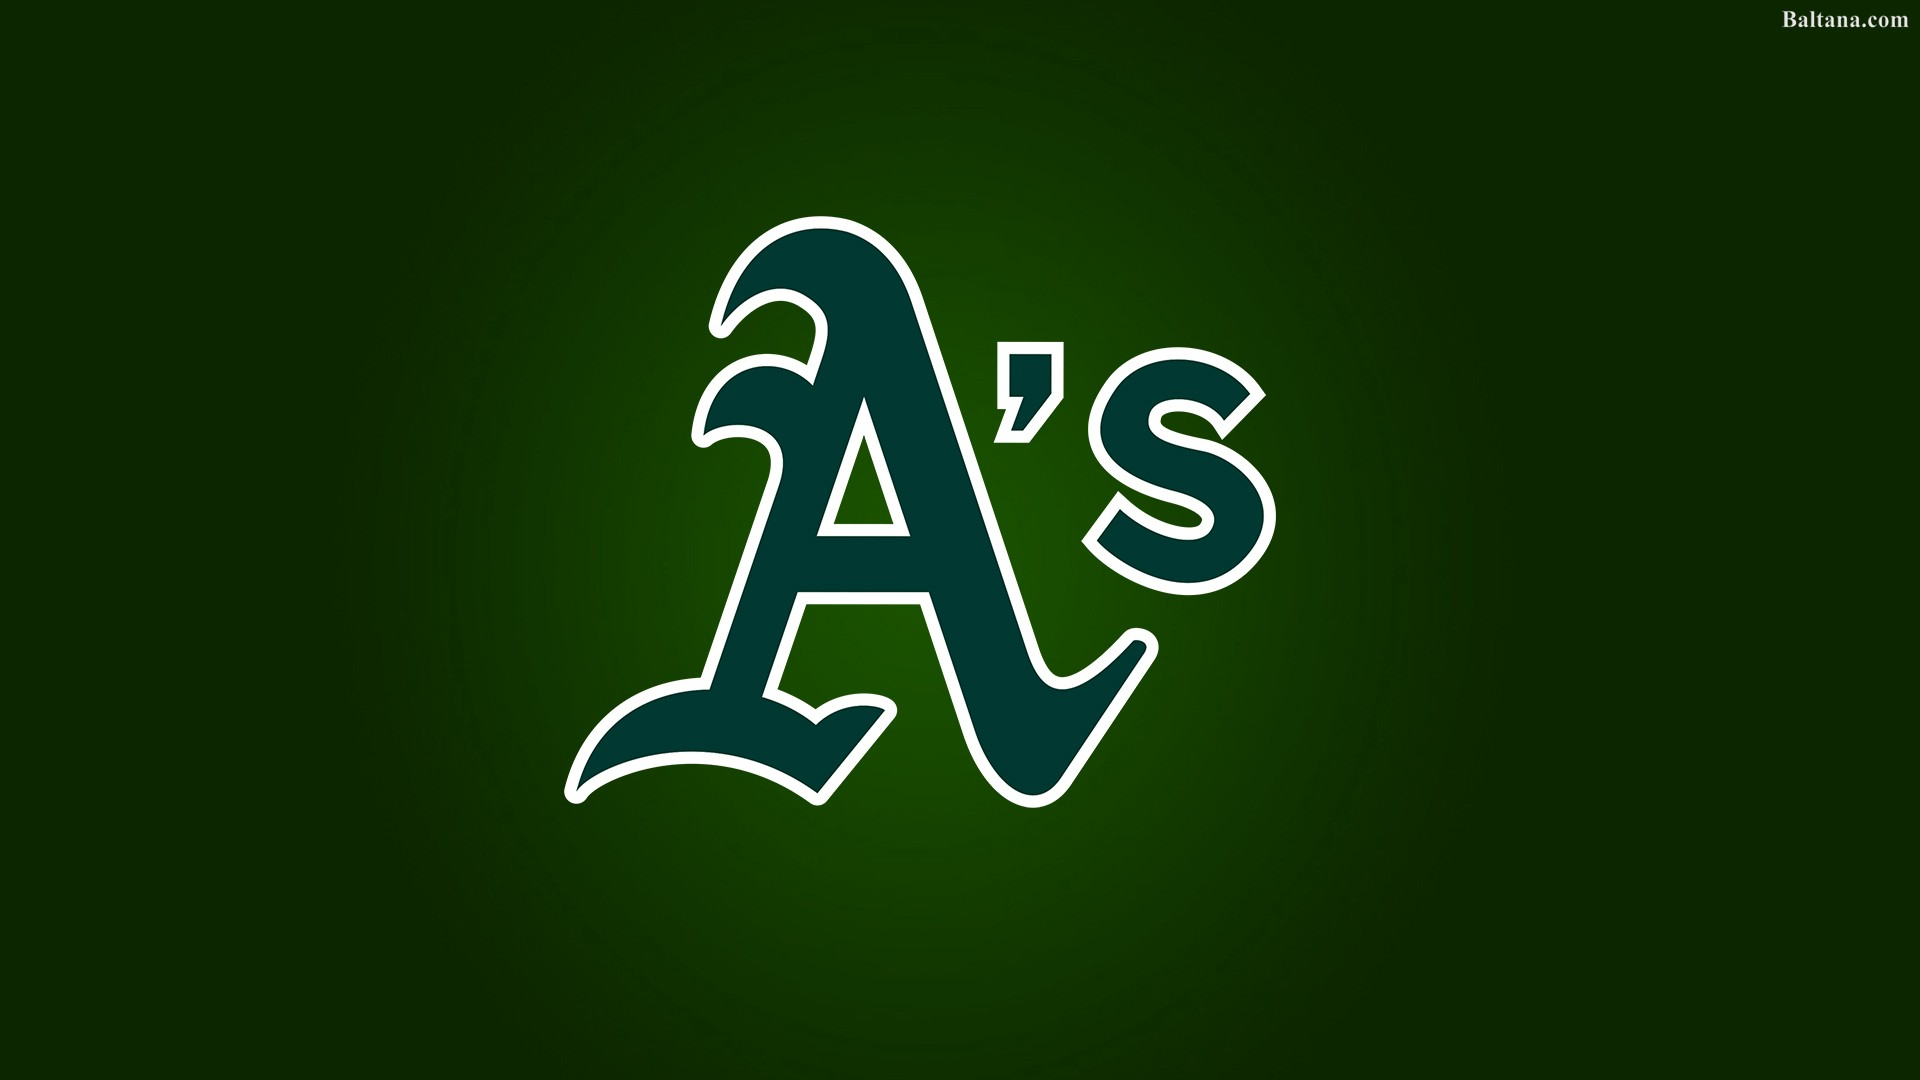 1920x1080 - Oakland Athletics Wallpapers 9